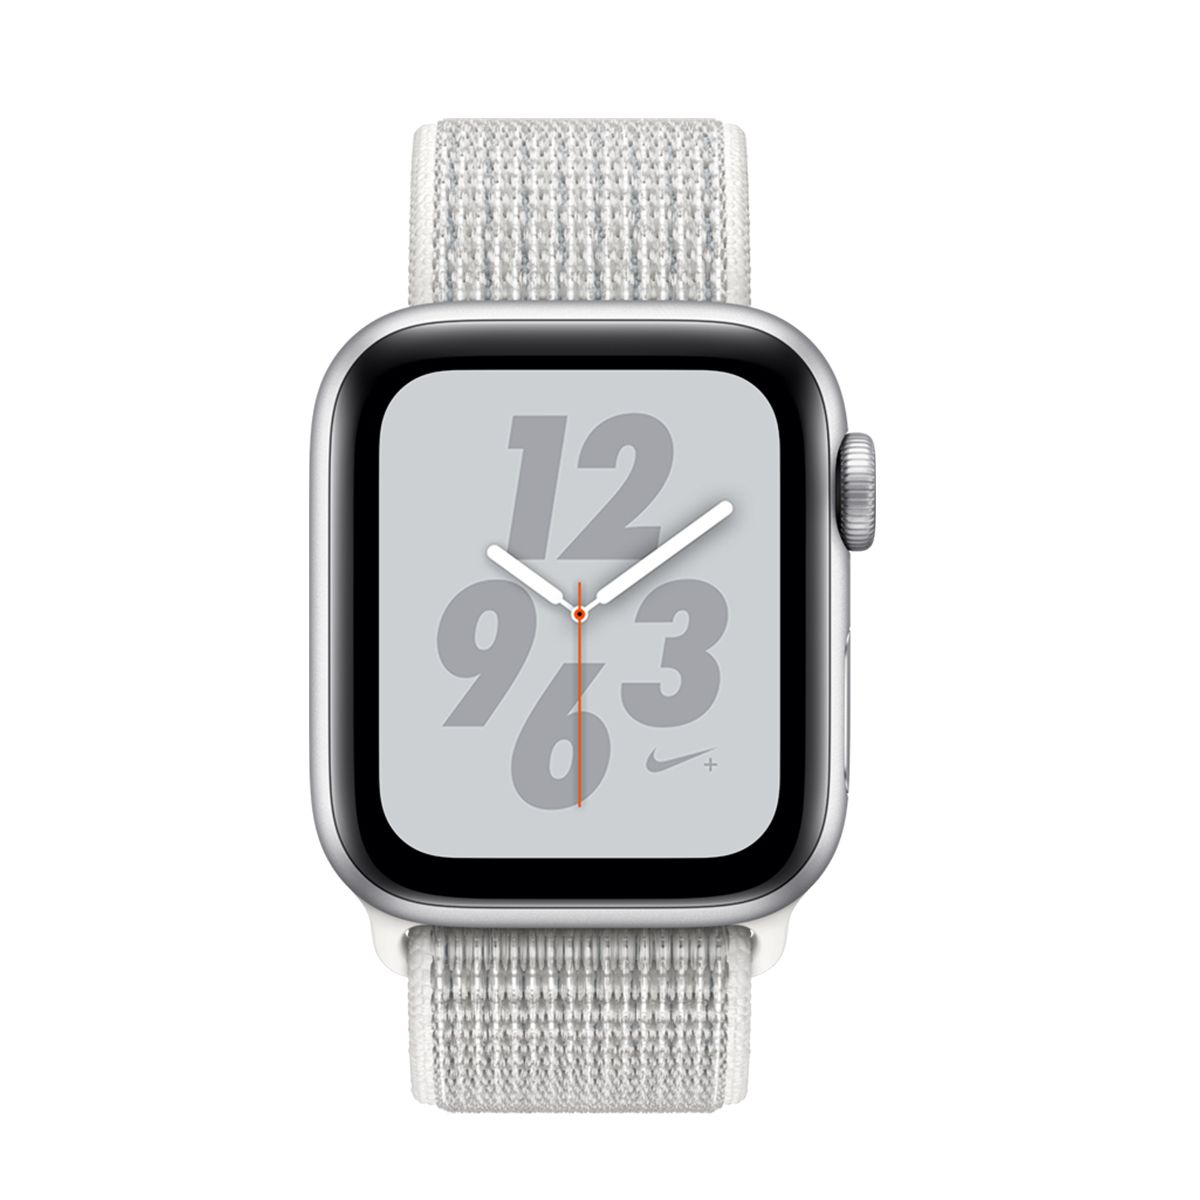 3f203e23200 Apple Watch Nike + GPS and GPS + Cellular